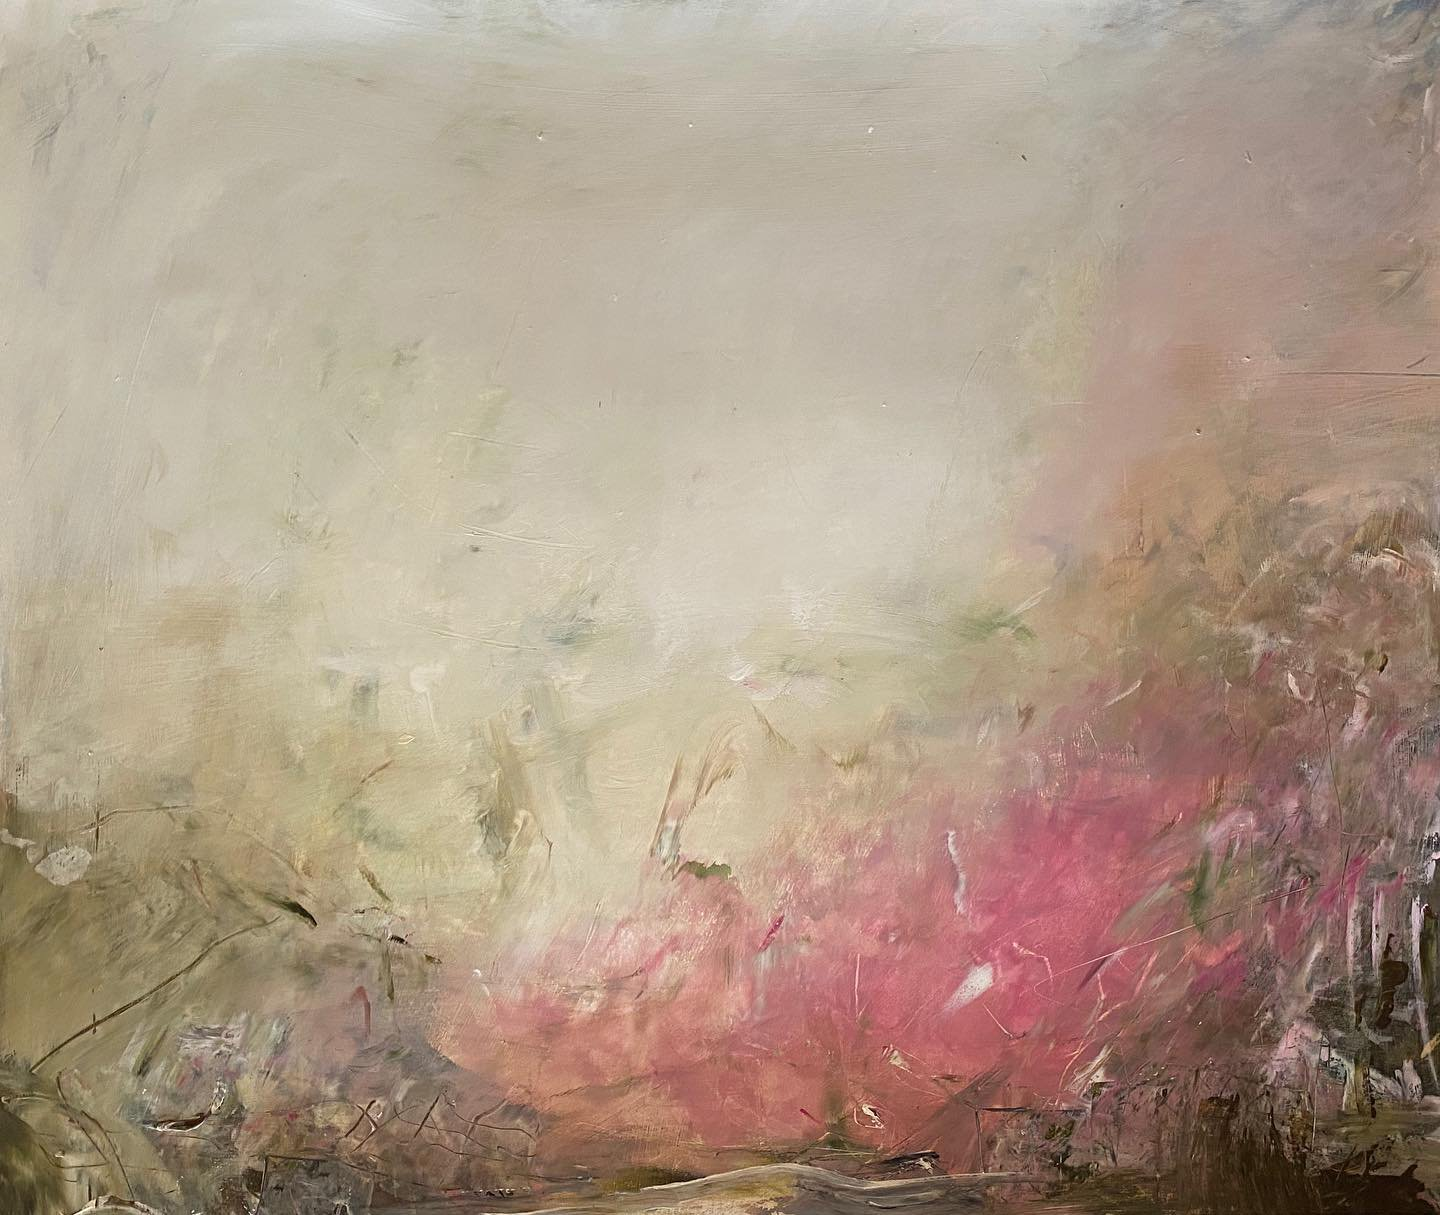 'Heaven's Gaze I', an abstract expressionist landscape painting on paper by contemporary woman artist Rachel Redfern